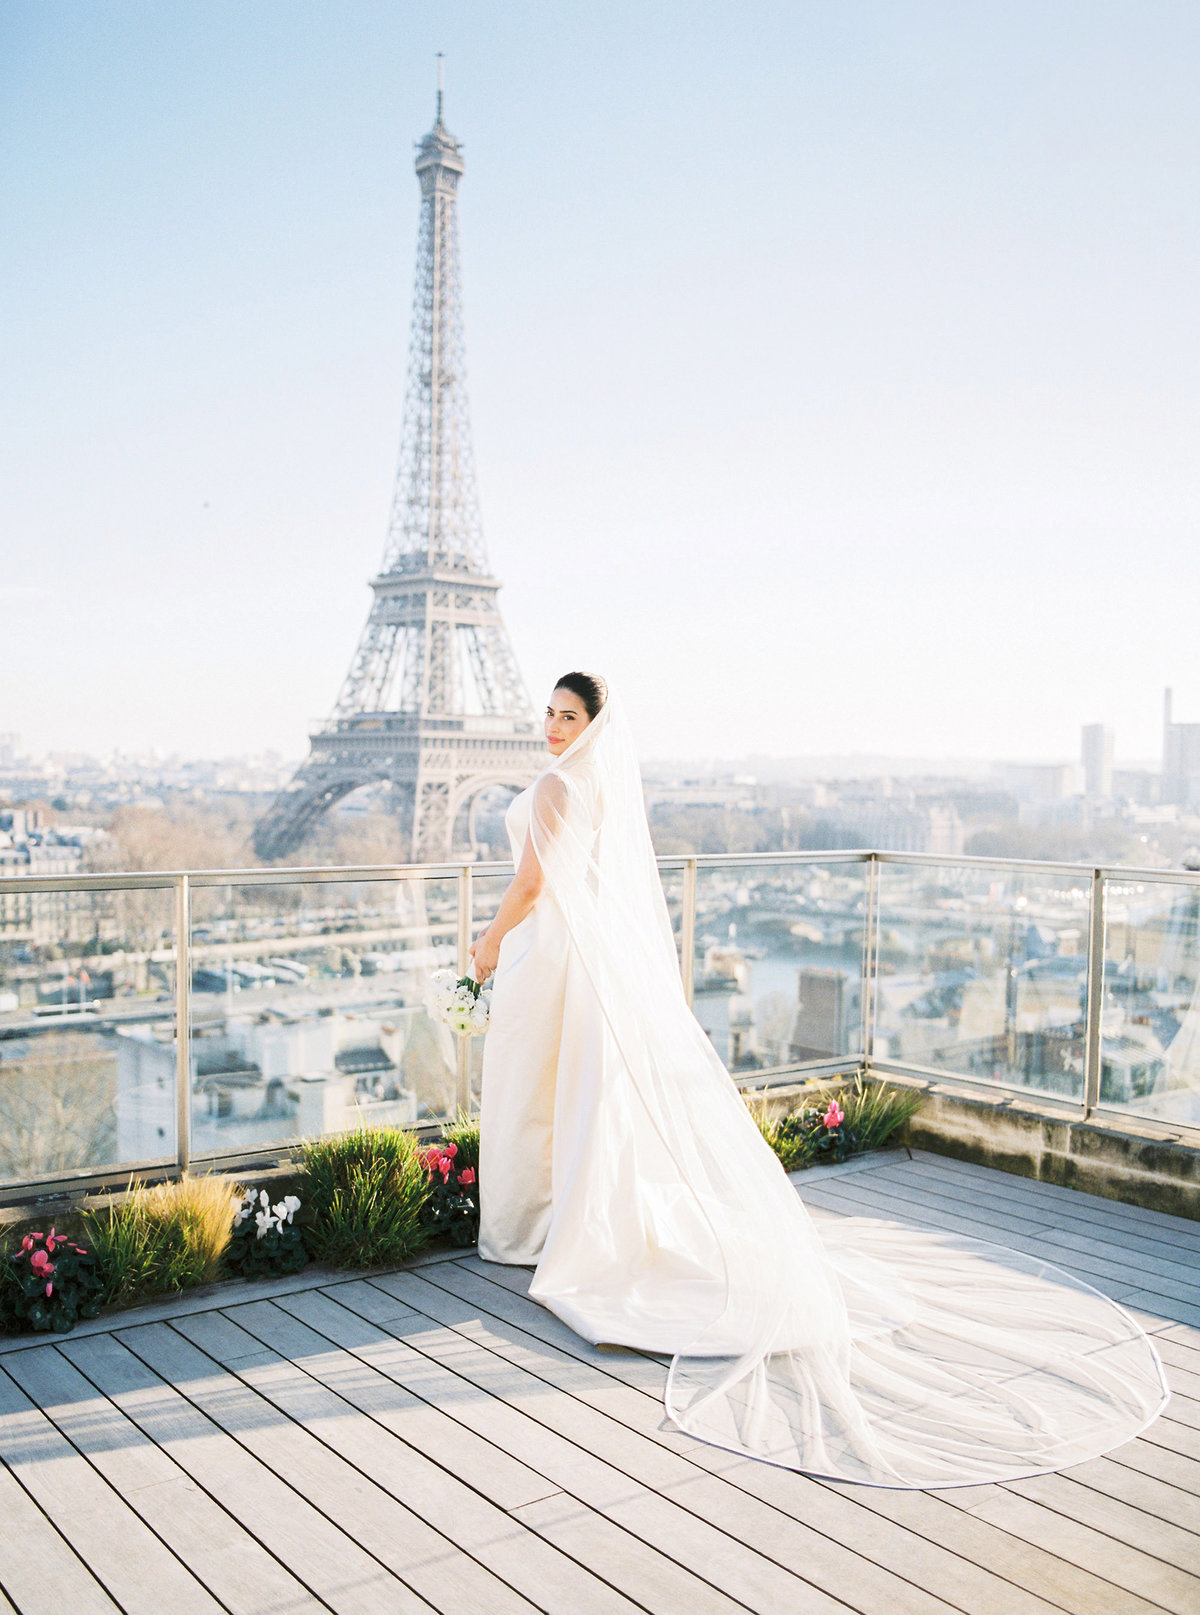 Paris_wedding_photographer_claire_Morris_111